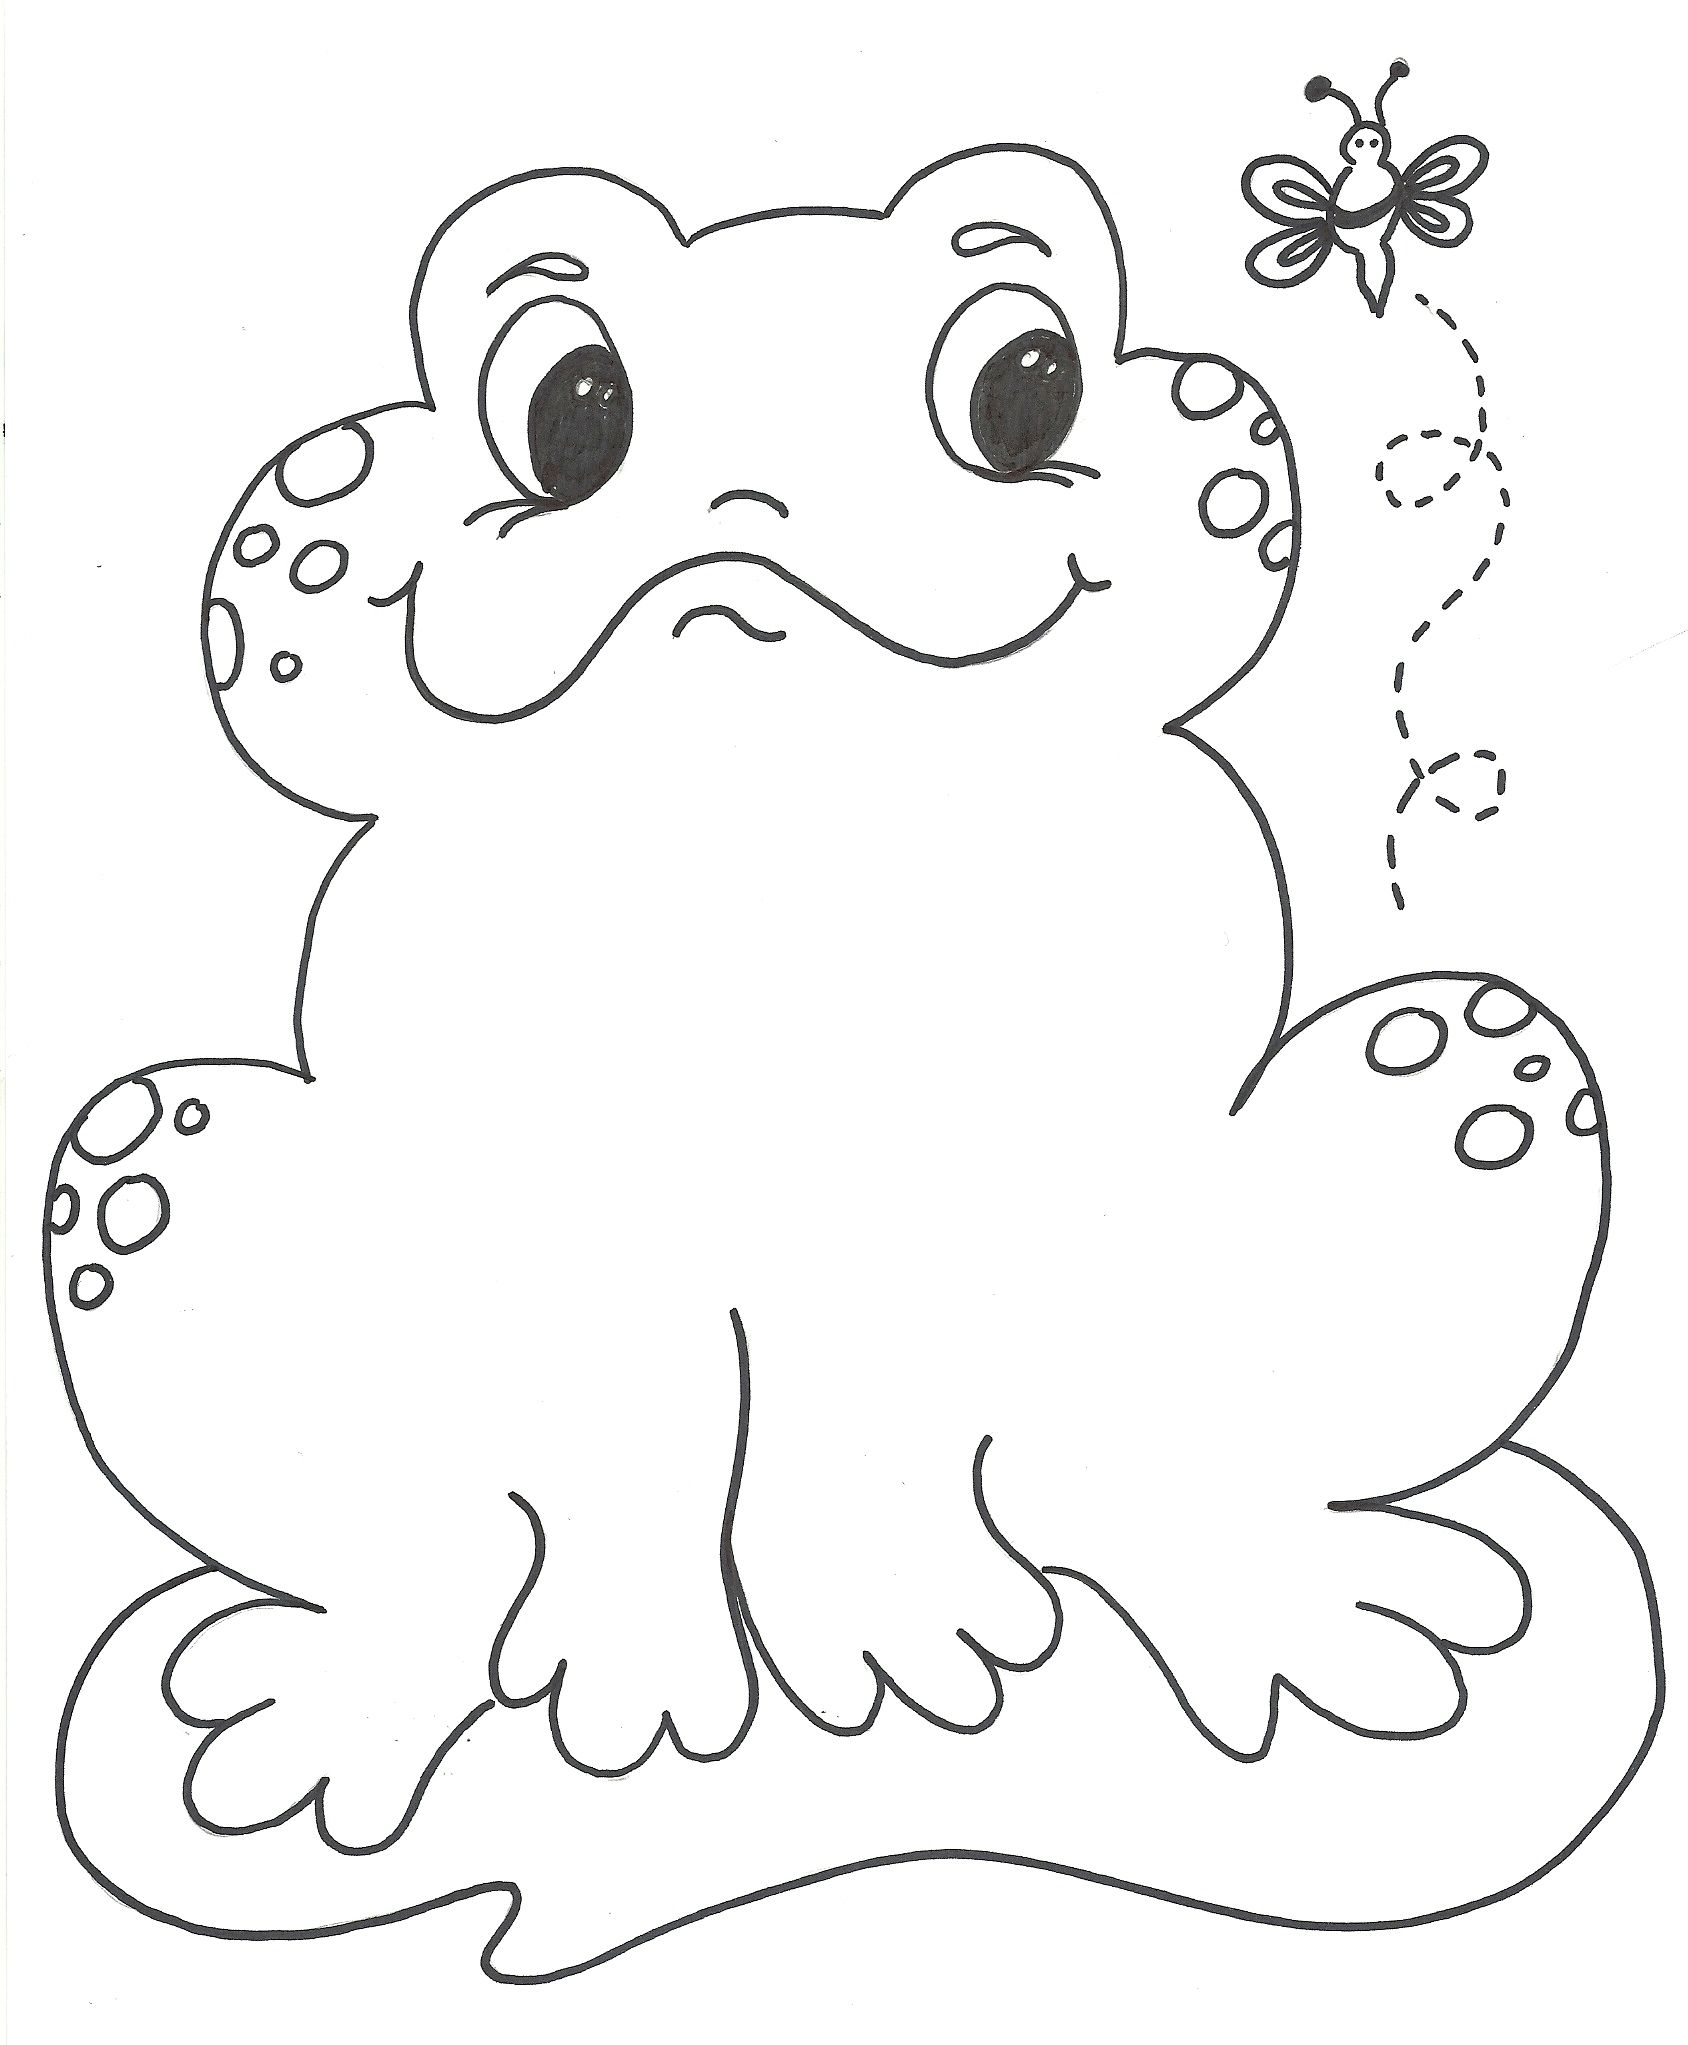 coloring pictures of frogs for kids google search - Free Frog Coloring Pages